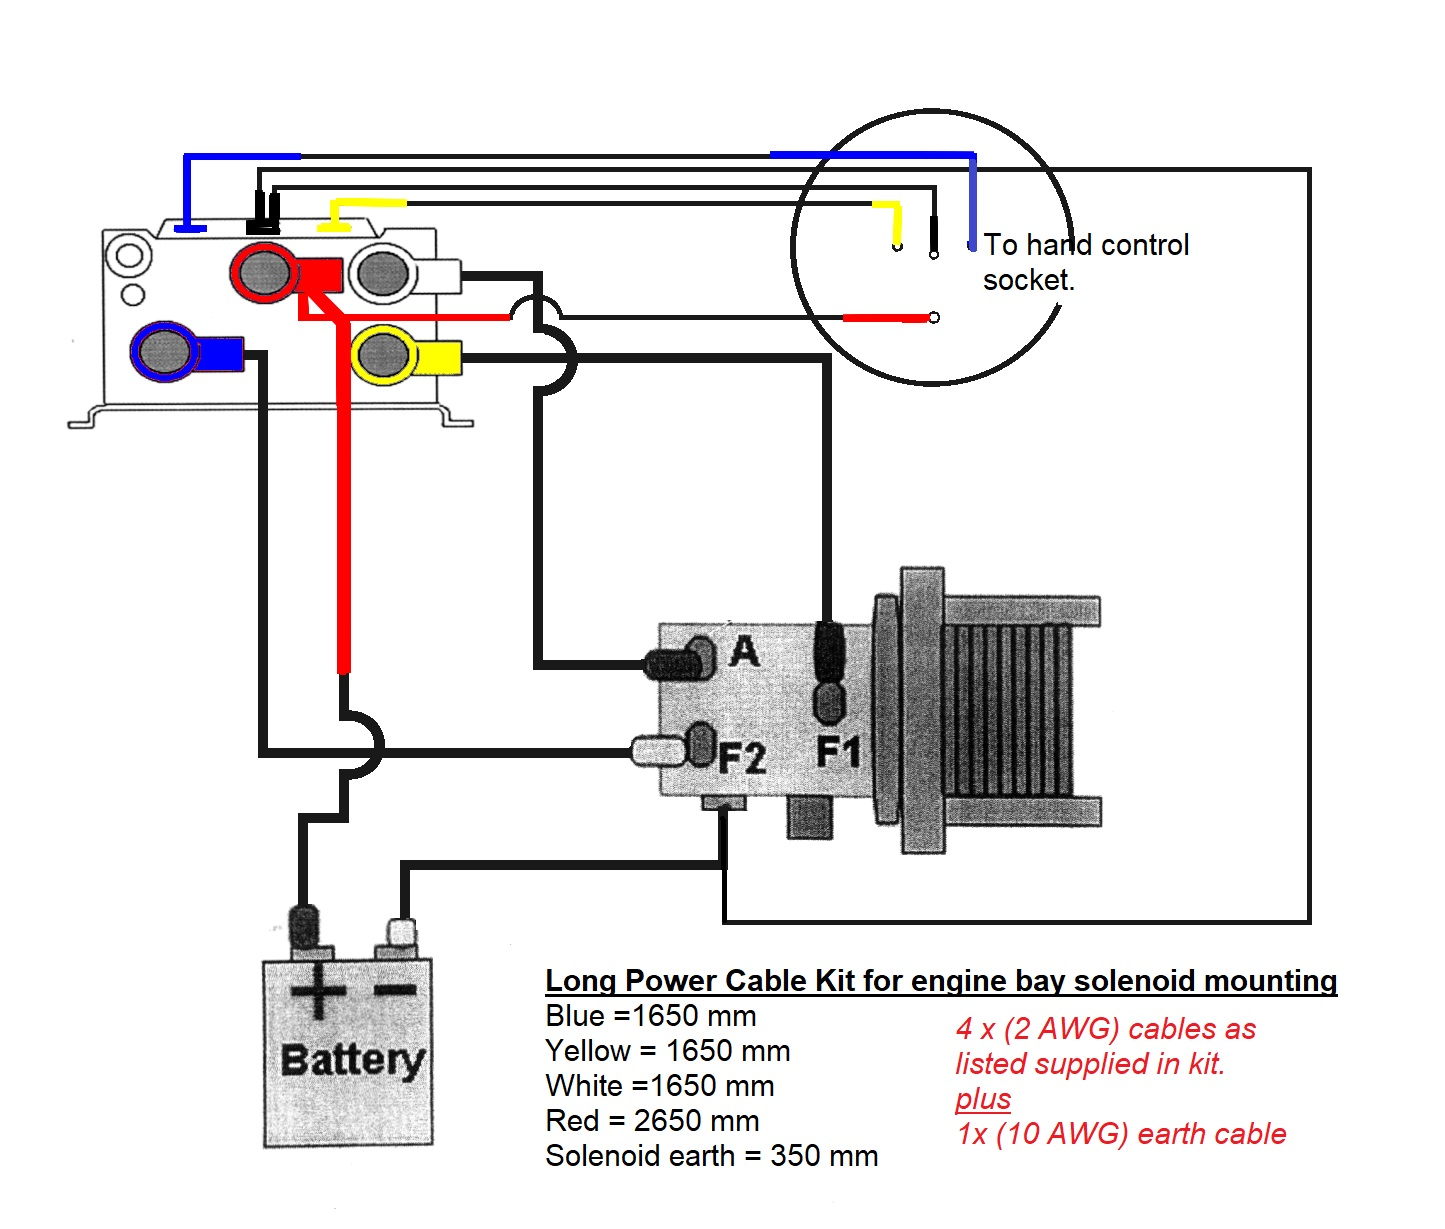 diagram] wirer atv winch motor wiring diagram 2 full version hd quality  diagram 2 - windwiring.a-mon-image.fr  windwiring.a-mon-image.fr